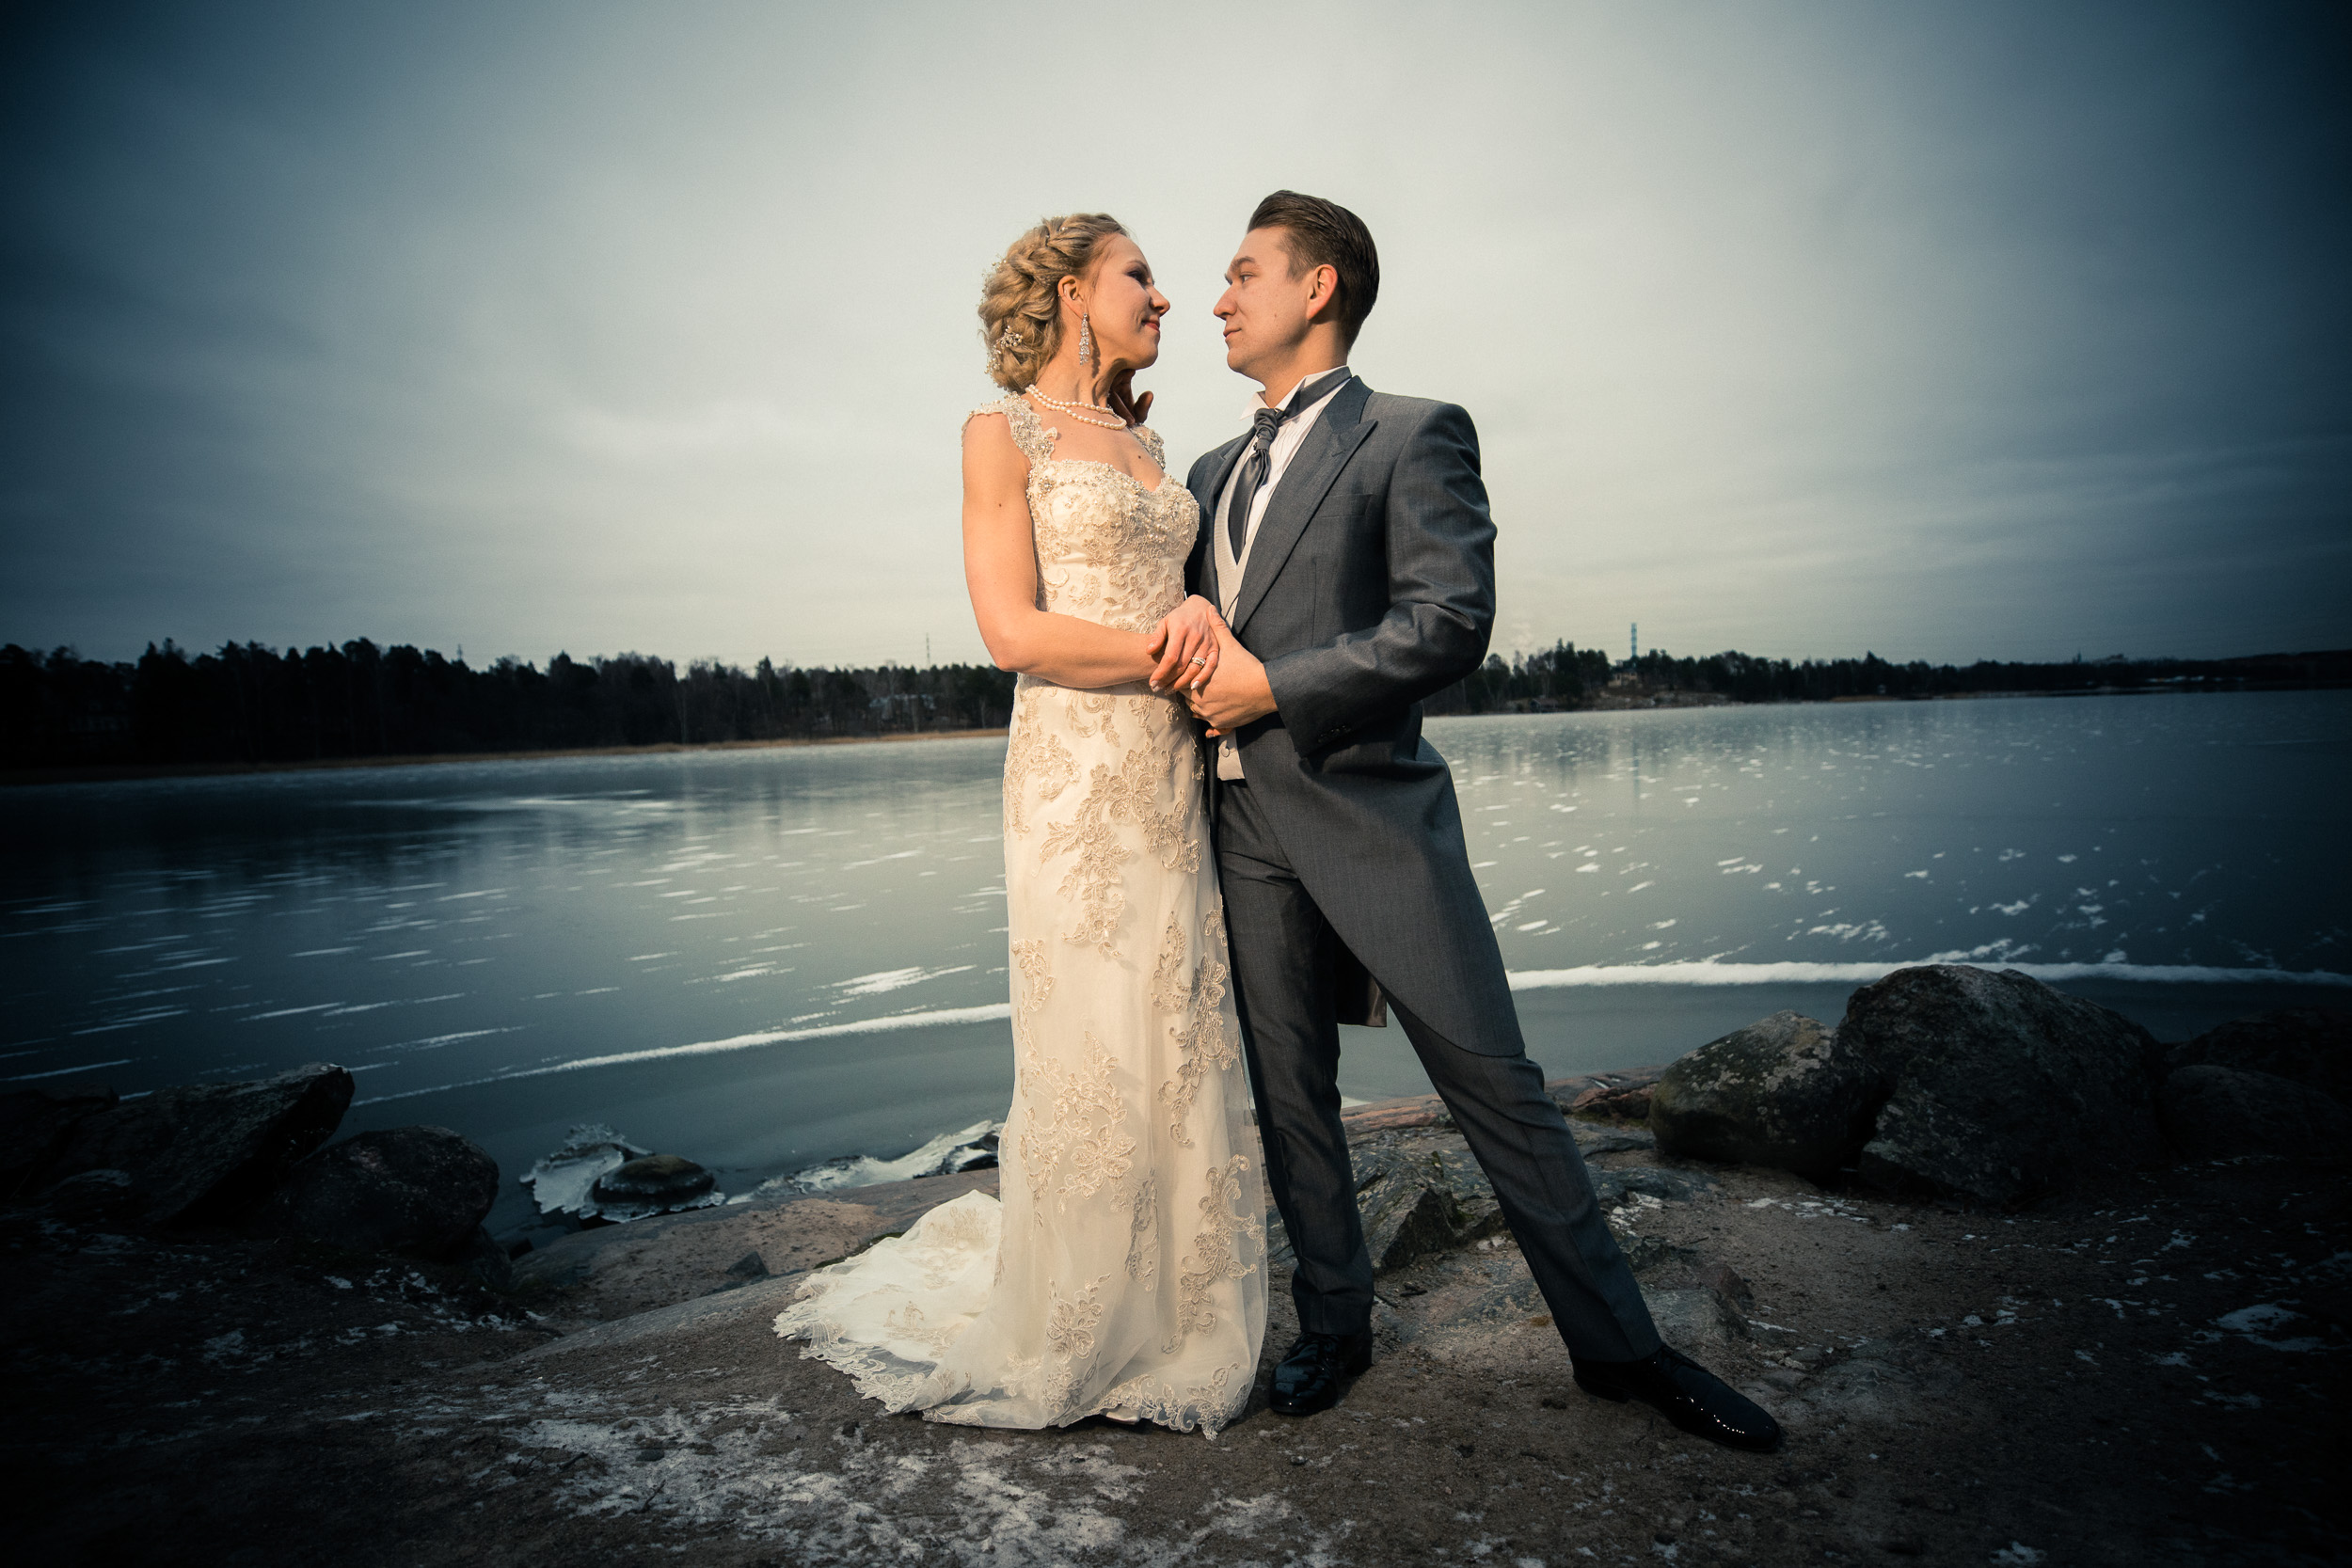 Laura & Kari - Hääkuvaus / Wedding photo